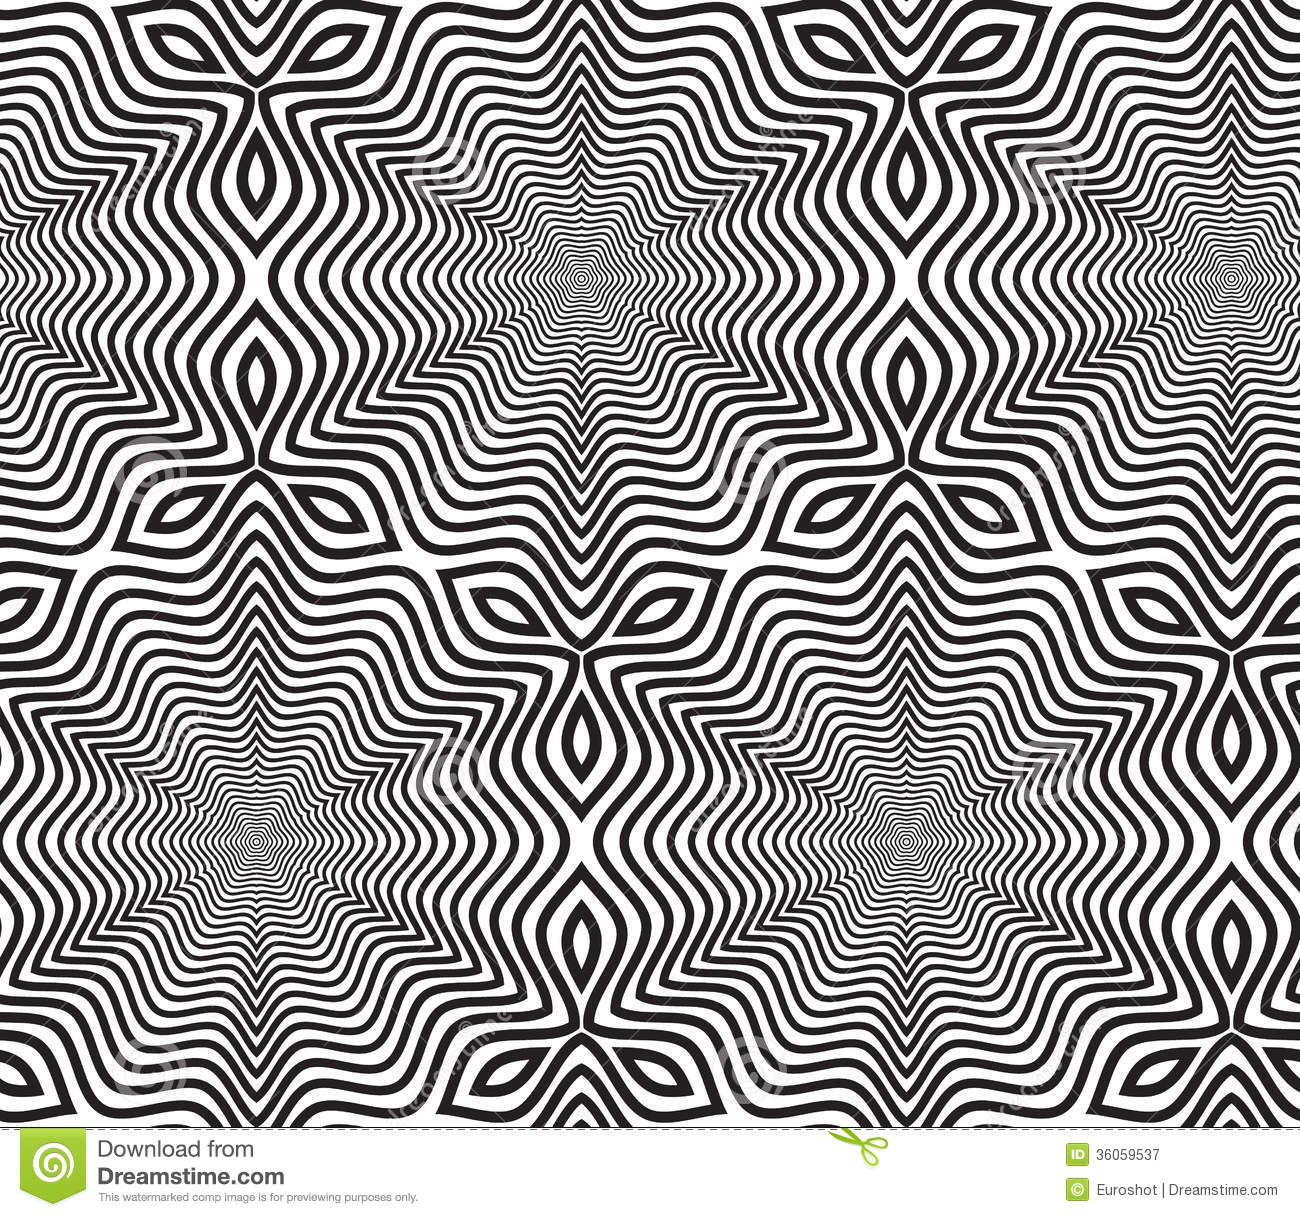 Line Design Op Art : Black and white op art design vector seamless pattern